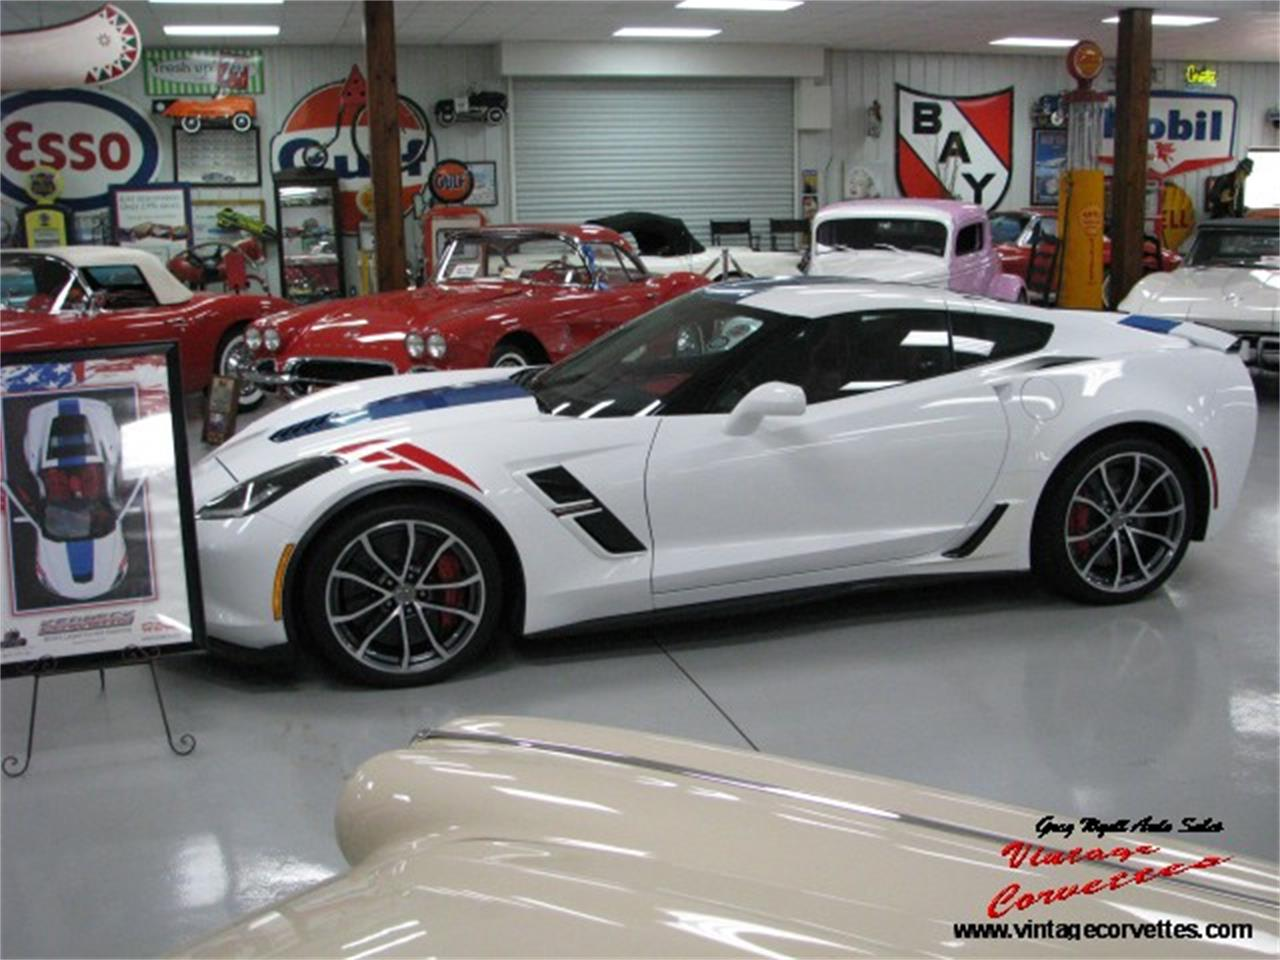 2017 Chevrolet Corvette (CC-1413845) for sale in Summerville, Georgia